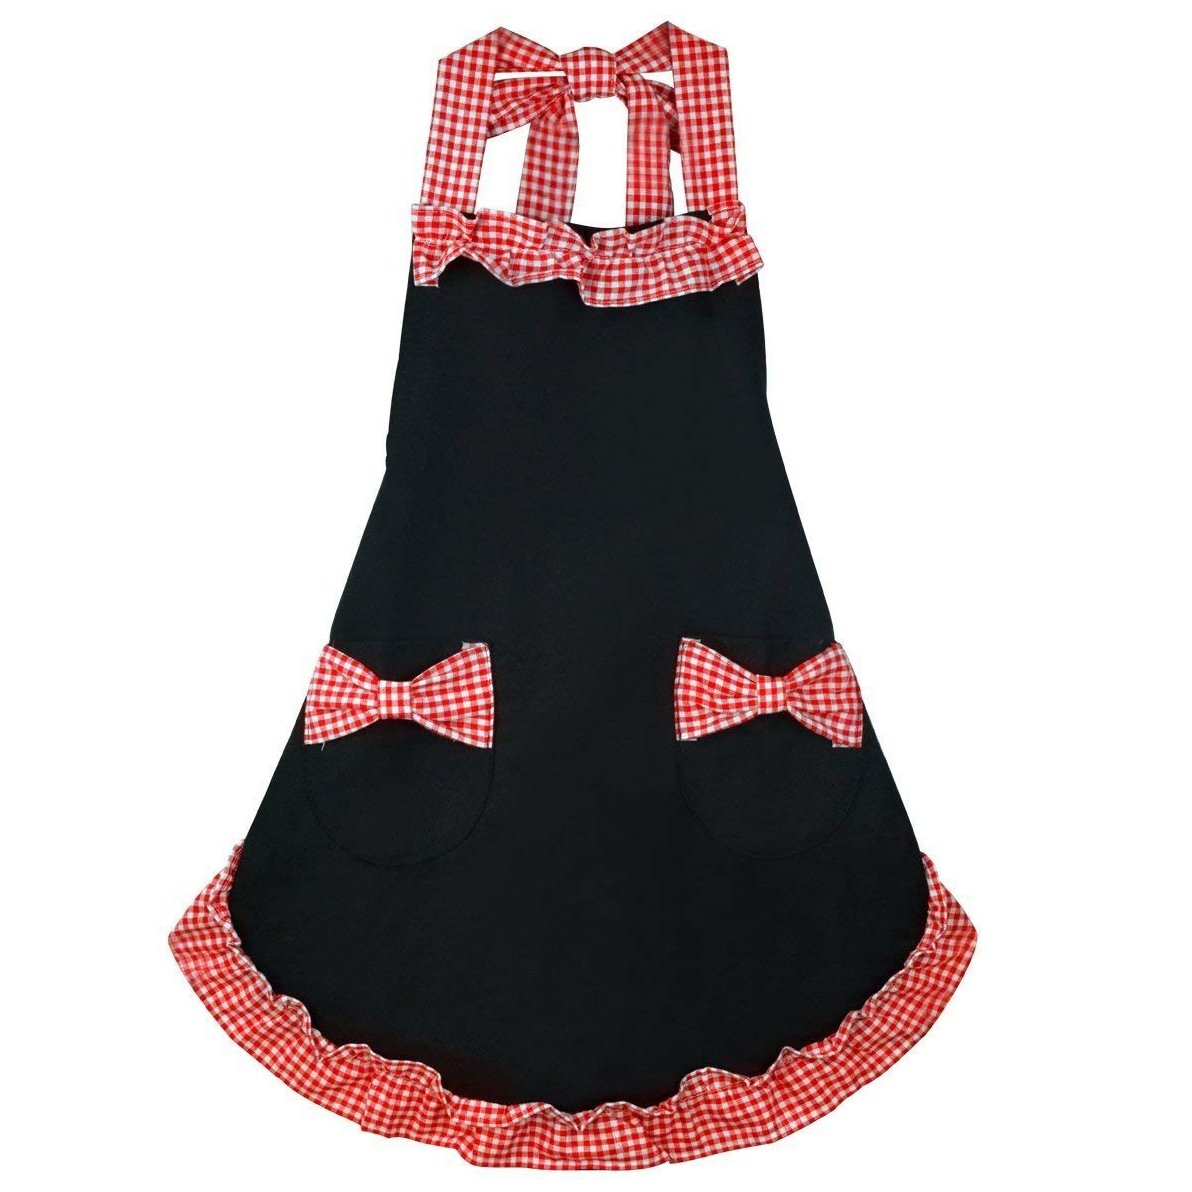 Marrywindix Kitchen Fashion Cute Sweety Hign Quality Cotton Grid Pattern Double Color Working Chefs Kitchen Cooking Cook Flirty Apron - with Bowknots Pockets Design (Black and Red)